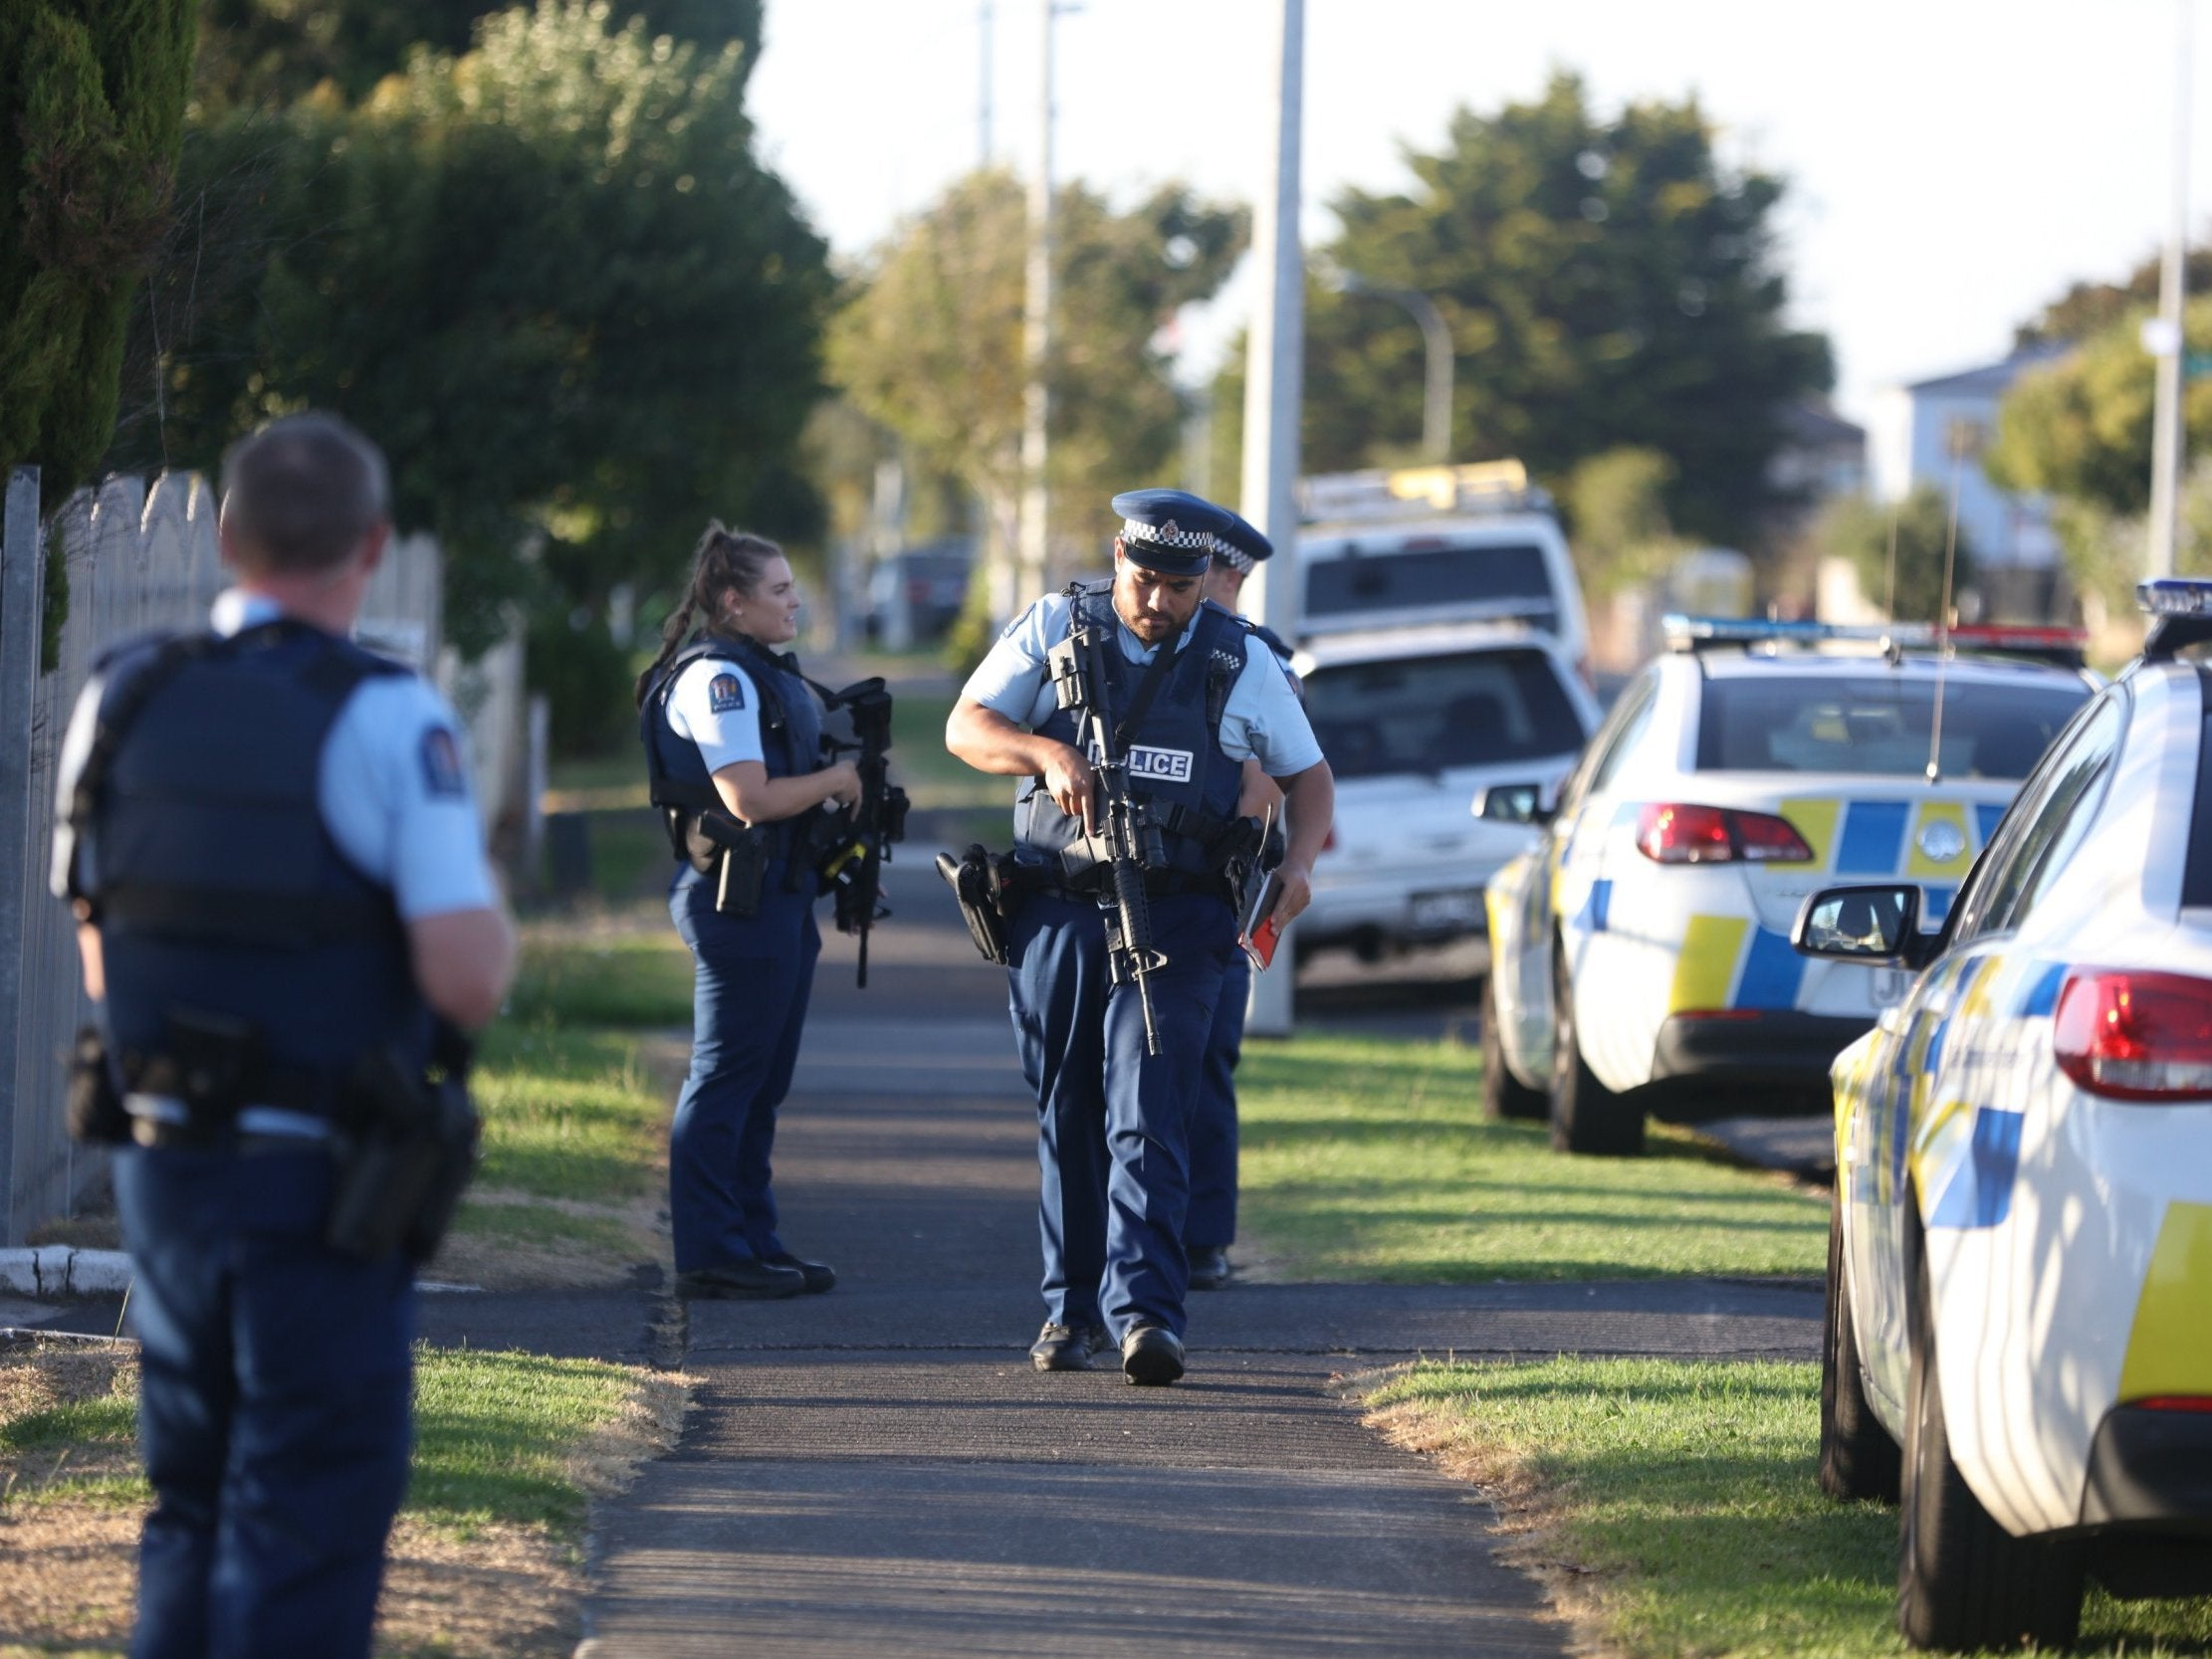 Christchurch Shooting Picture: New Zealand Shooting: Video Shows Police Arresting